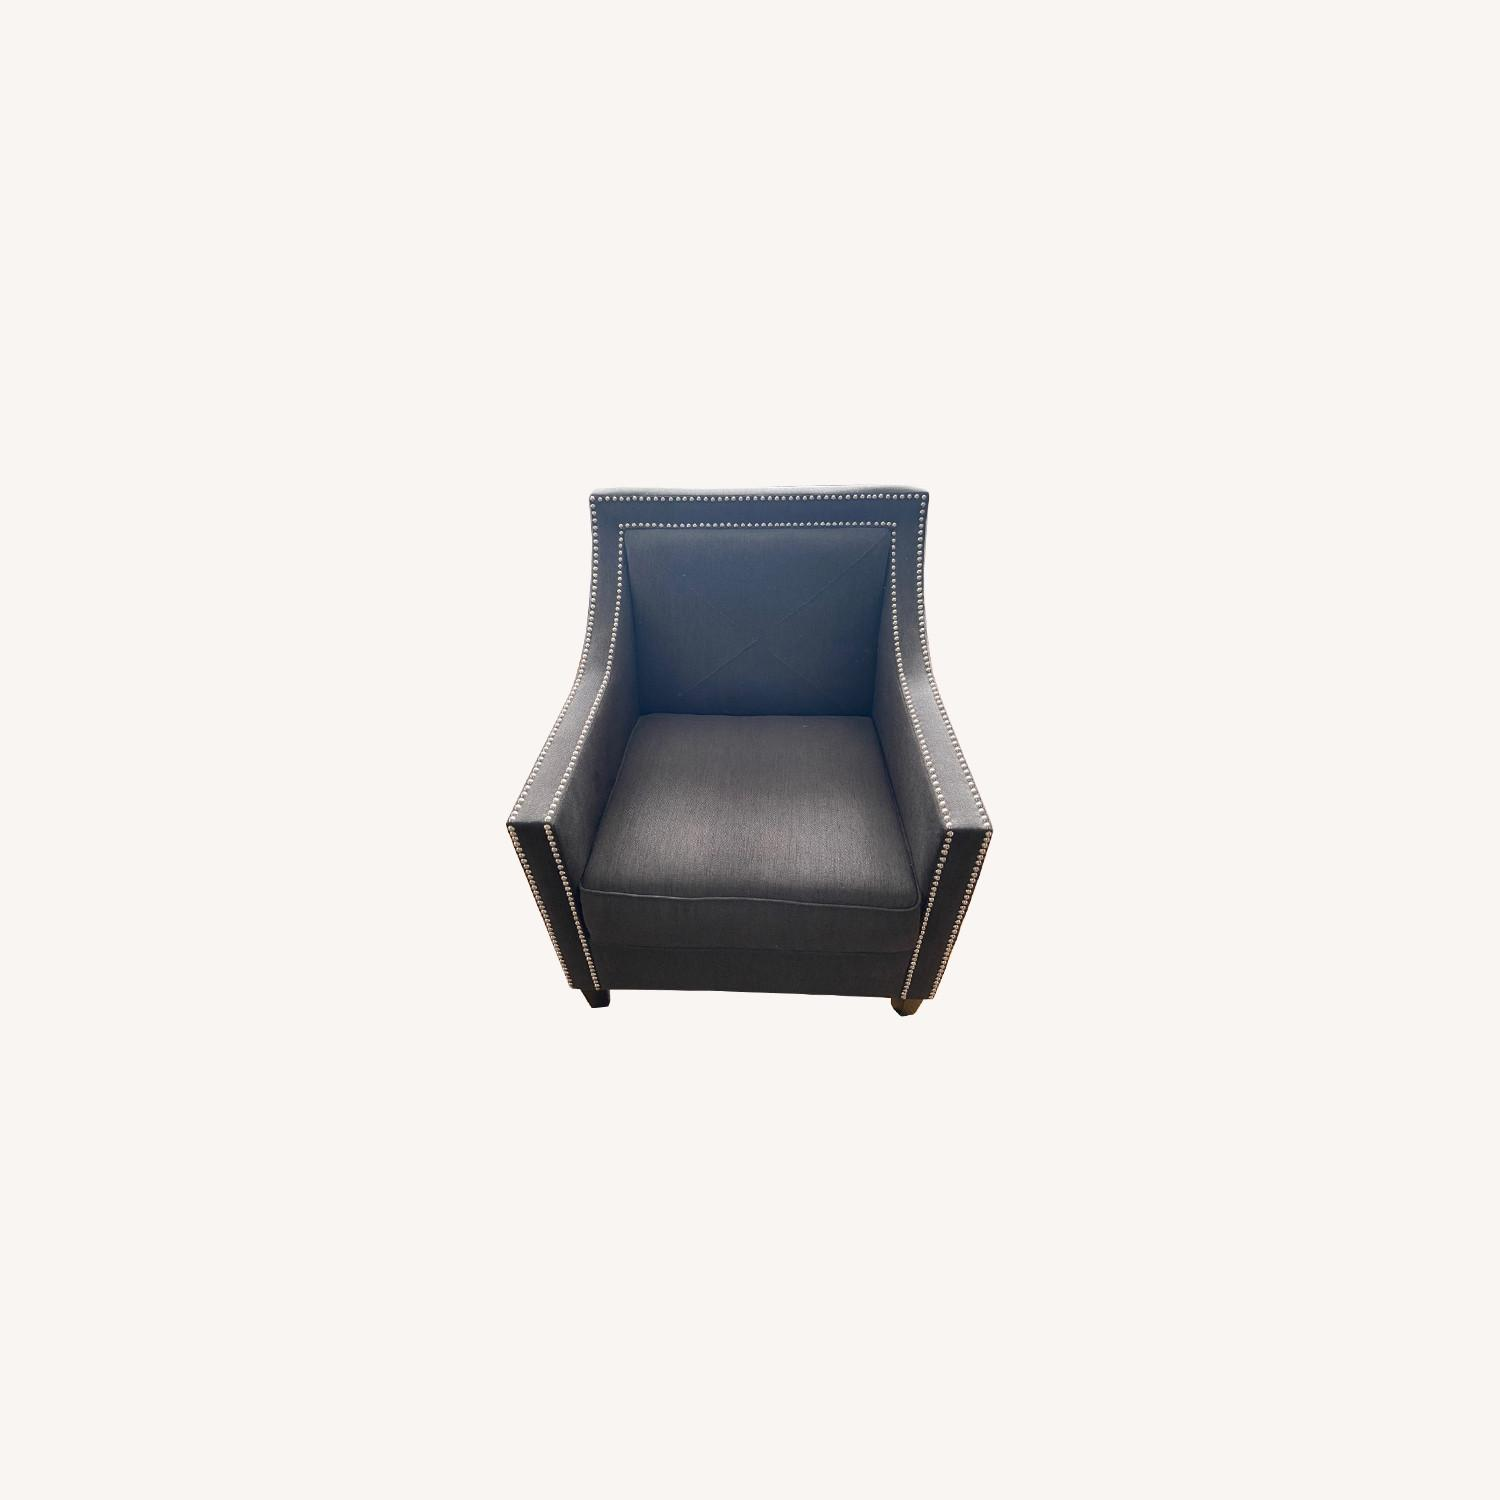 Charcoal Grey Upholstered Arm Chair - image-0